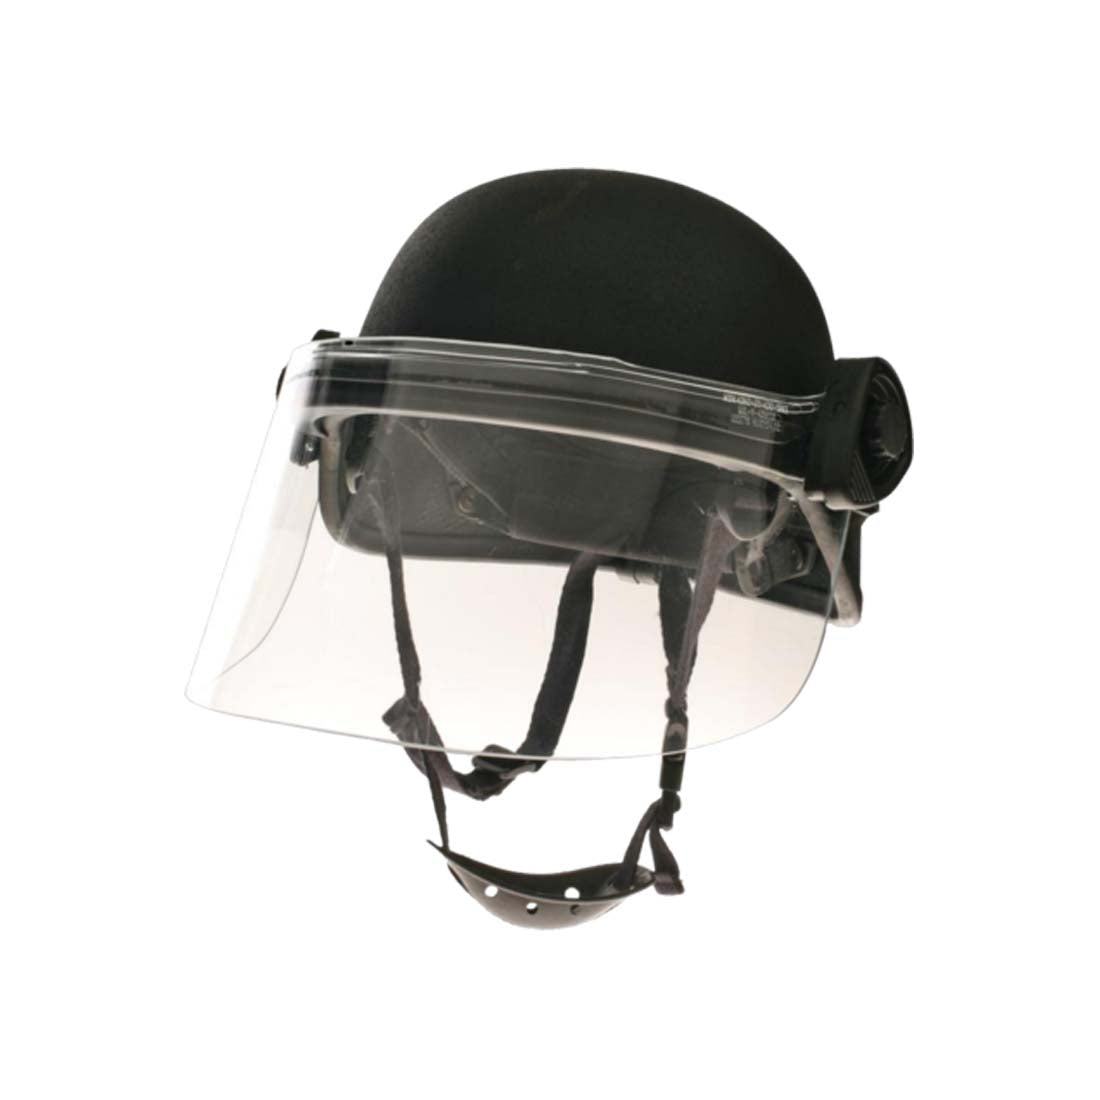 Paulson DK5-H.150S Military Police Riot Face Shields